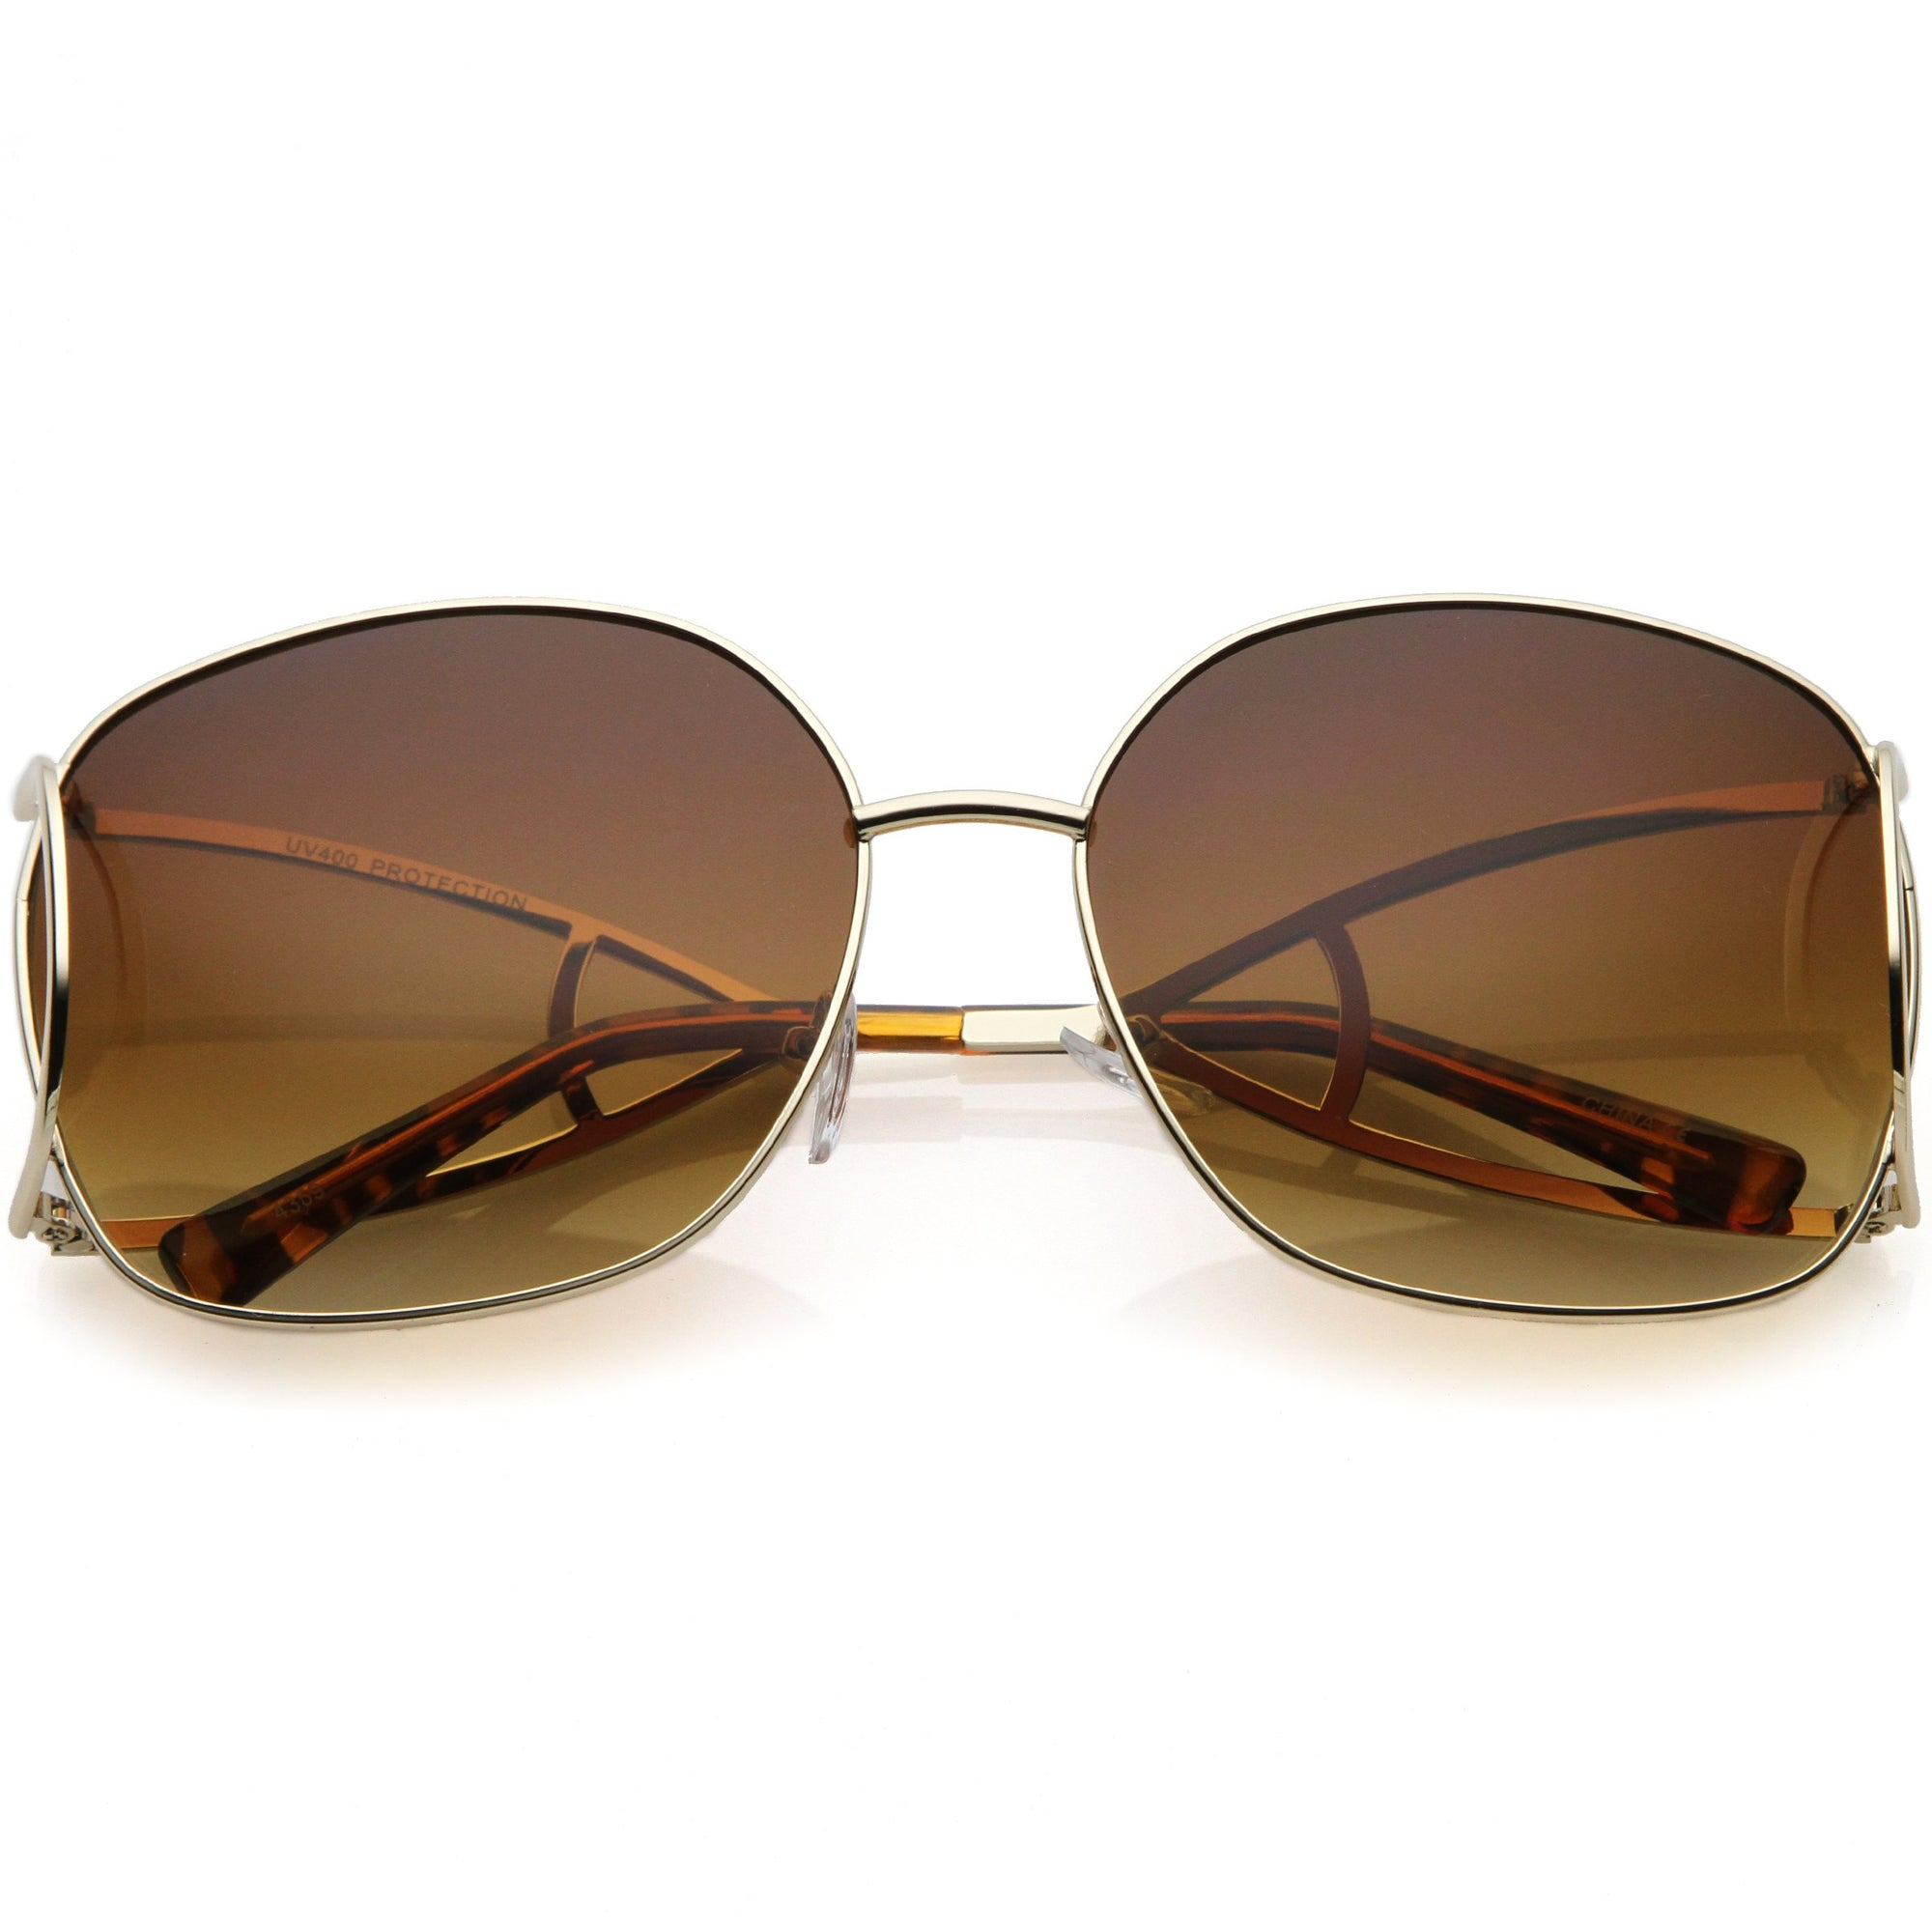 eaee0207c2 ... Oversize Women s High End Fashion Metal Sunglasses C156 · Gold Pink  Gradient · Gold Pink Gradient · Gold Pink Gradient · Gold Pink Gradient ·  Gold Amber